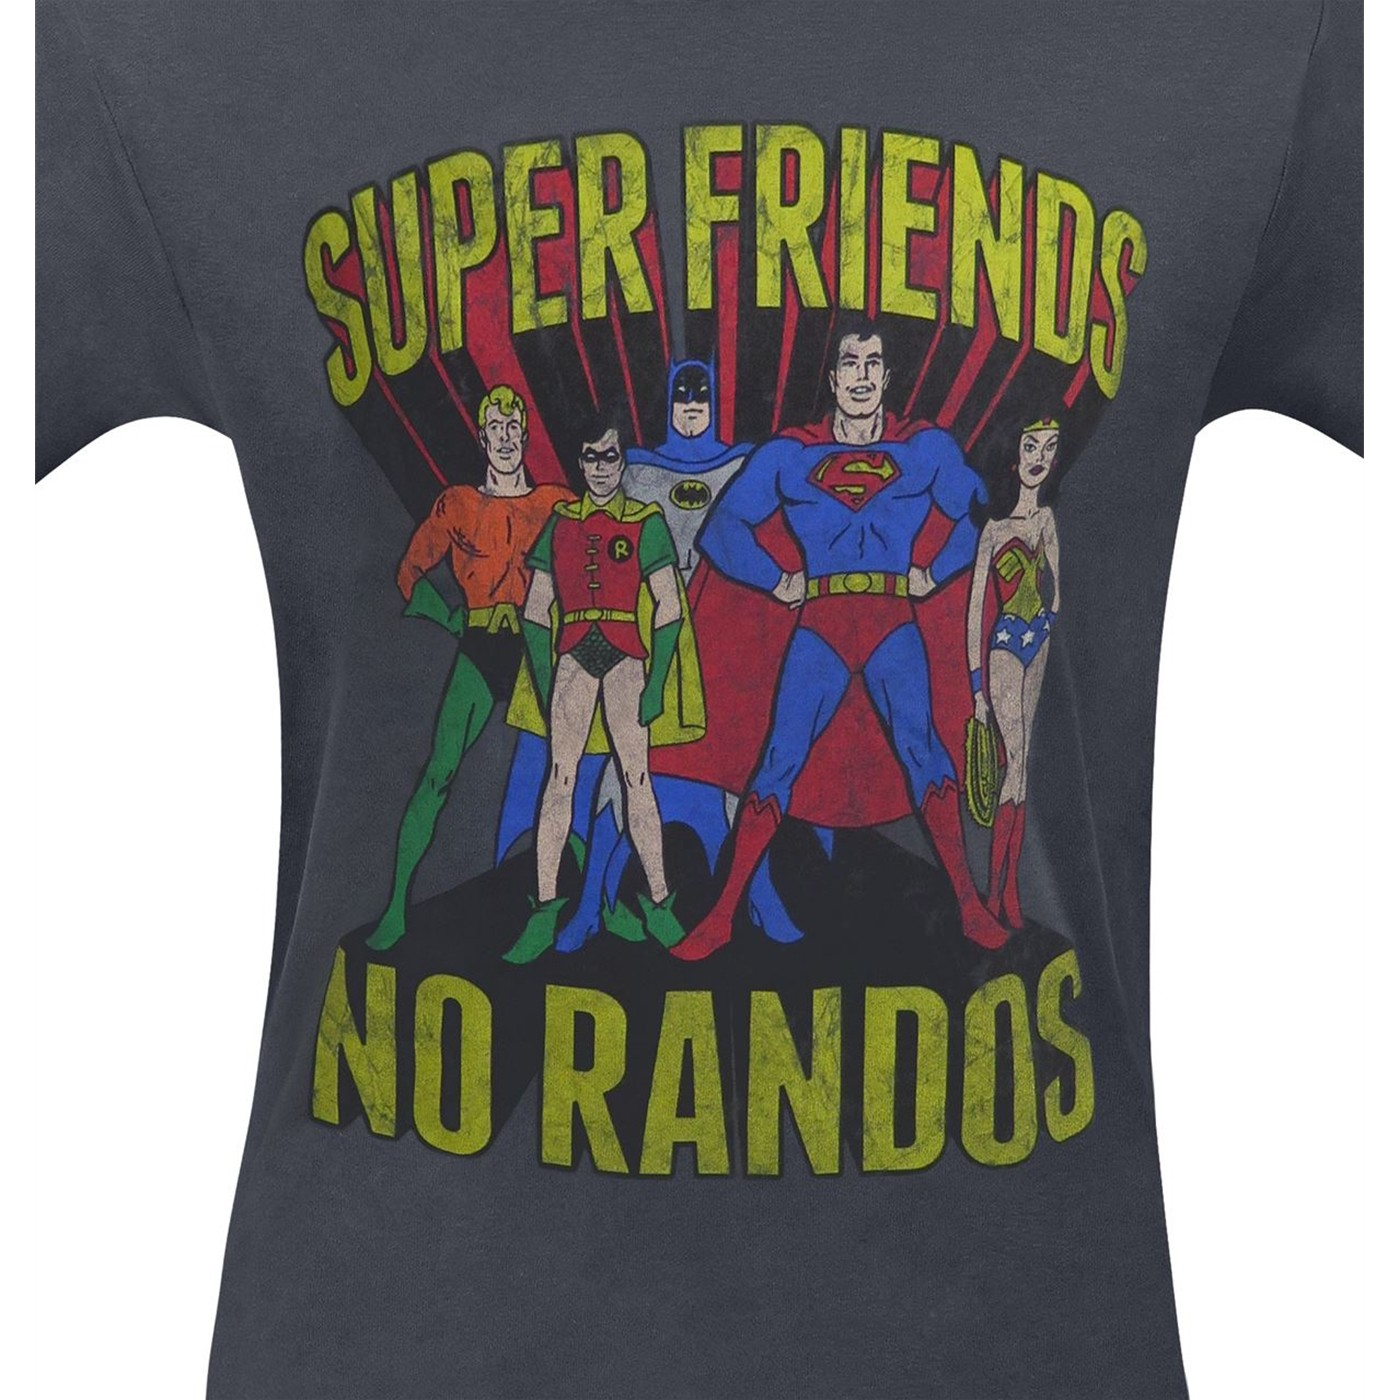 Super Friends No Randos Men's T-Shirt